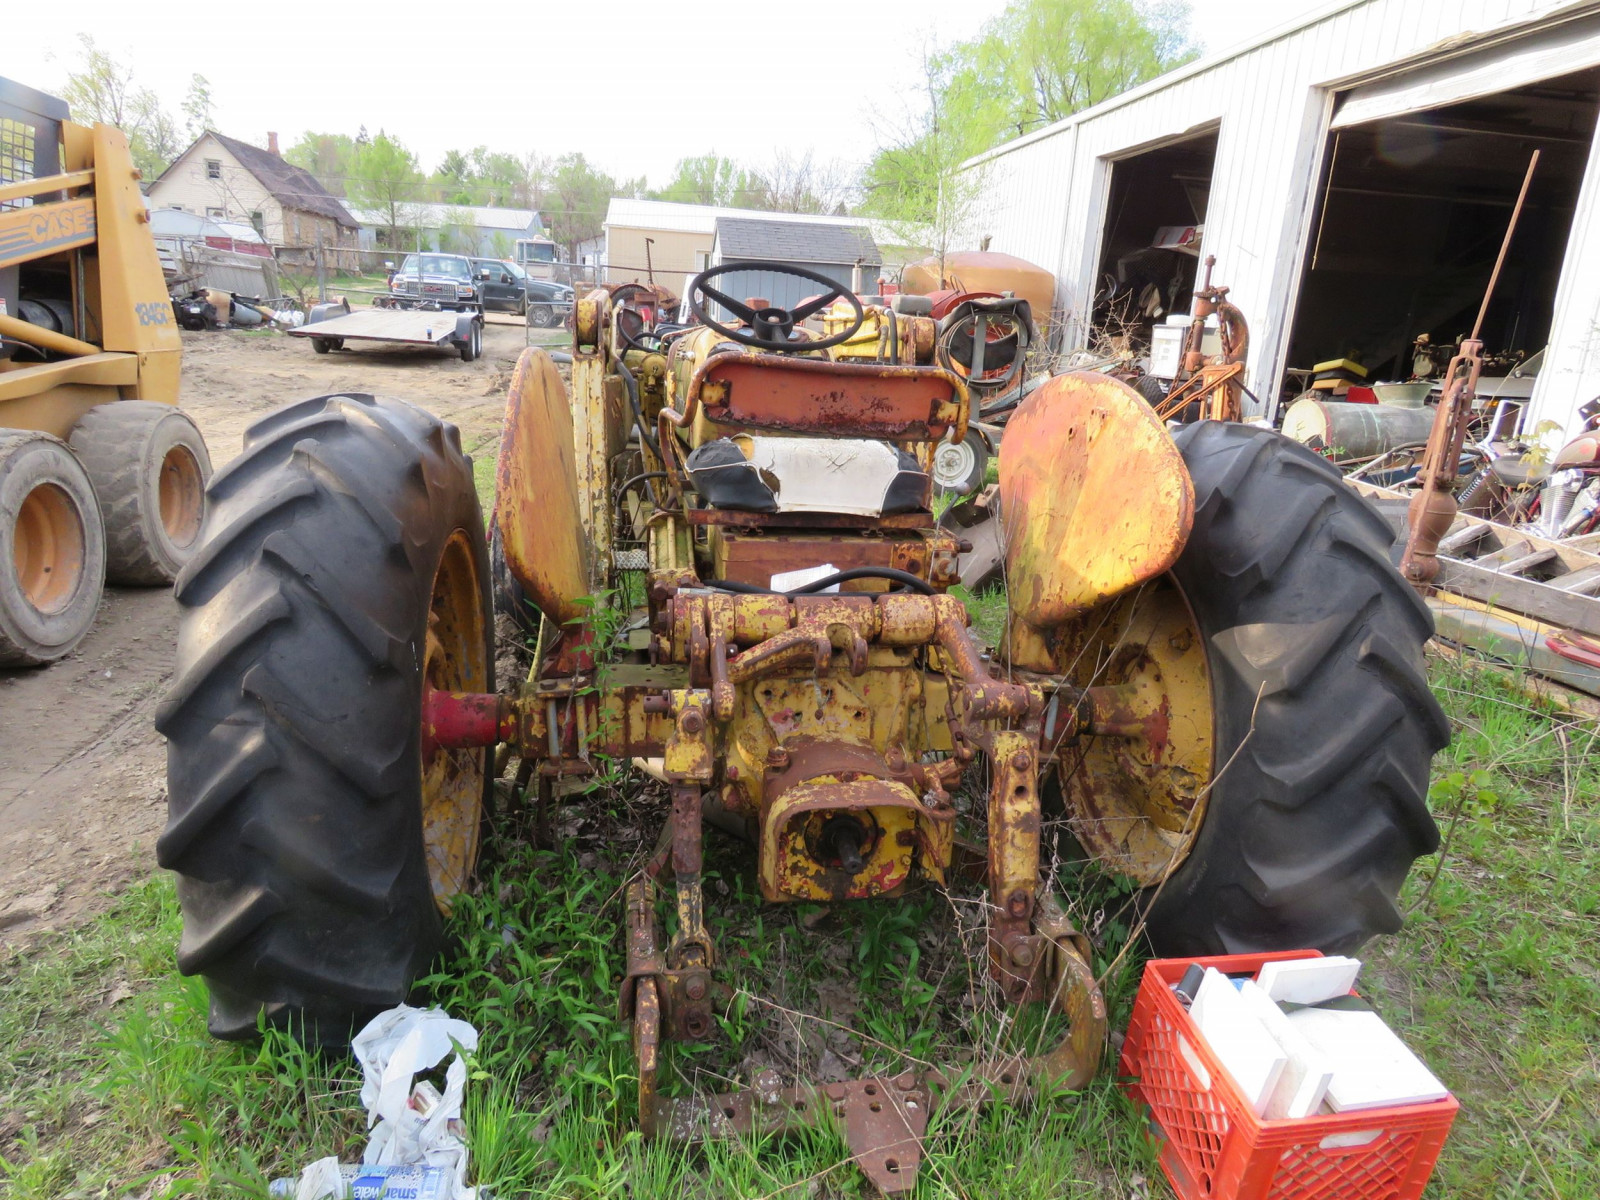 International 300 Tractor - Image 3